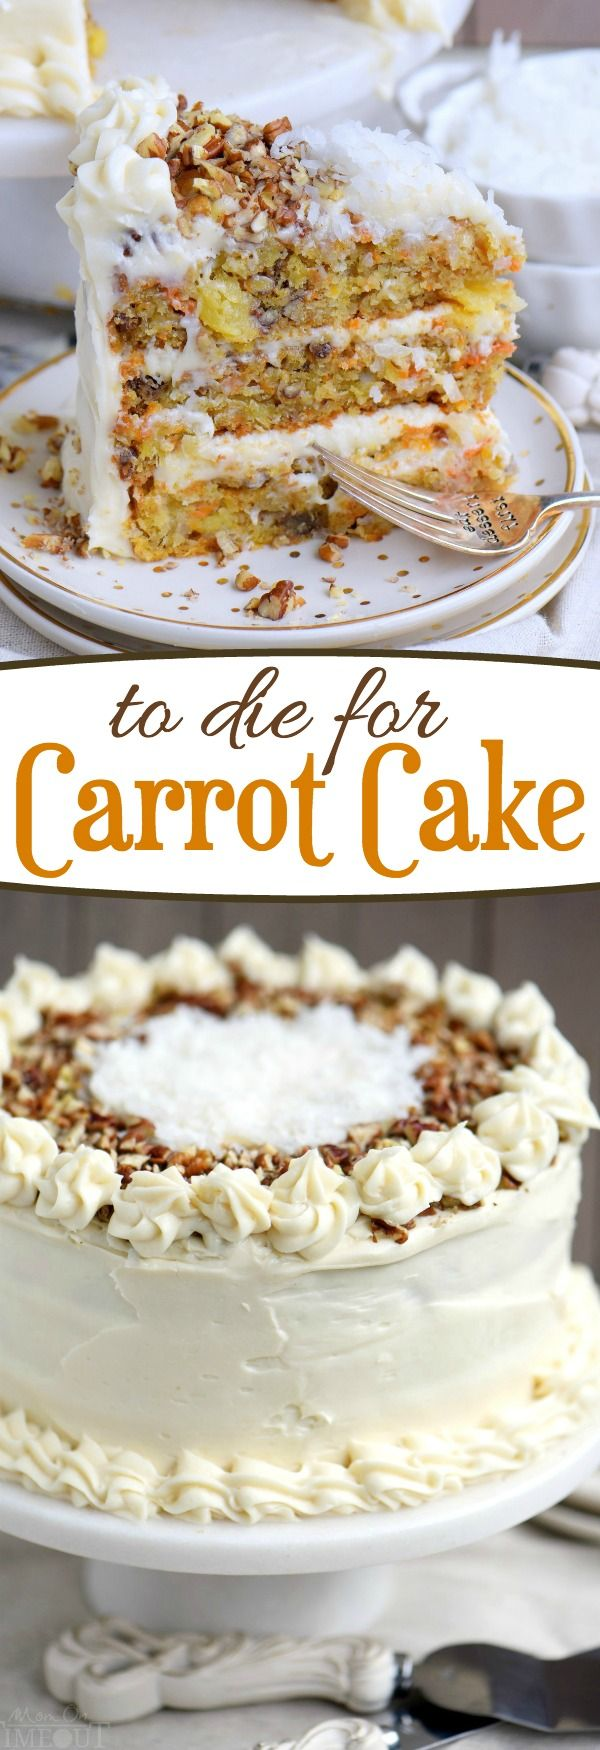 This To Die For Carrot Cake receives rave reviews for it's unbelievable moistness and flavor! Truly the BEST CARROT CAKE you'll ever try! So easy to make and as an added bonus, there's no oil or butter! I know this cake will quickly become a family favorite! // Mom On Timeout: